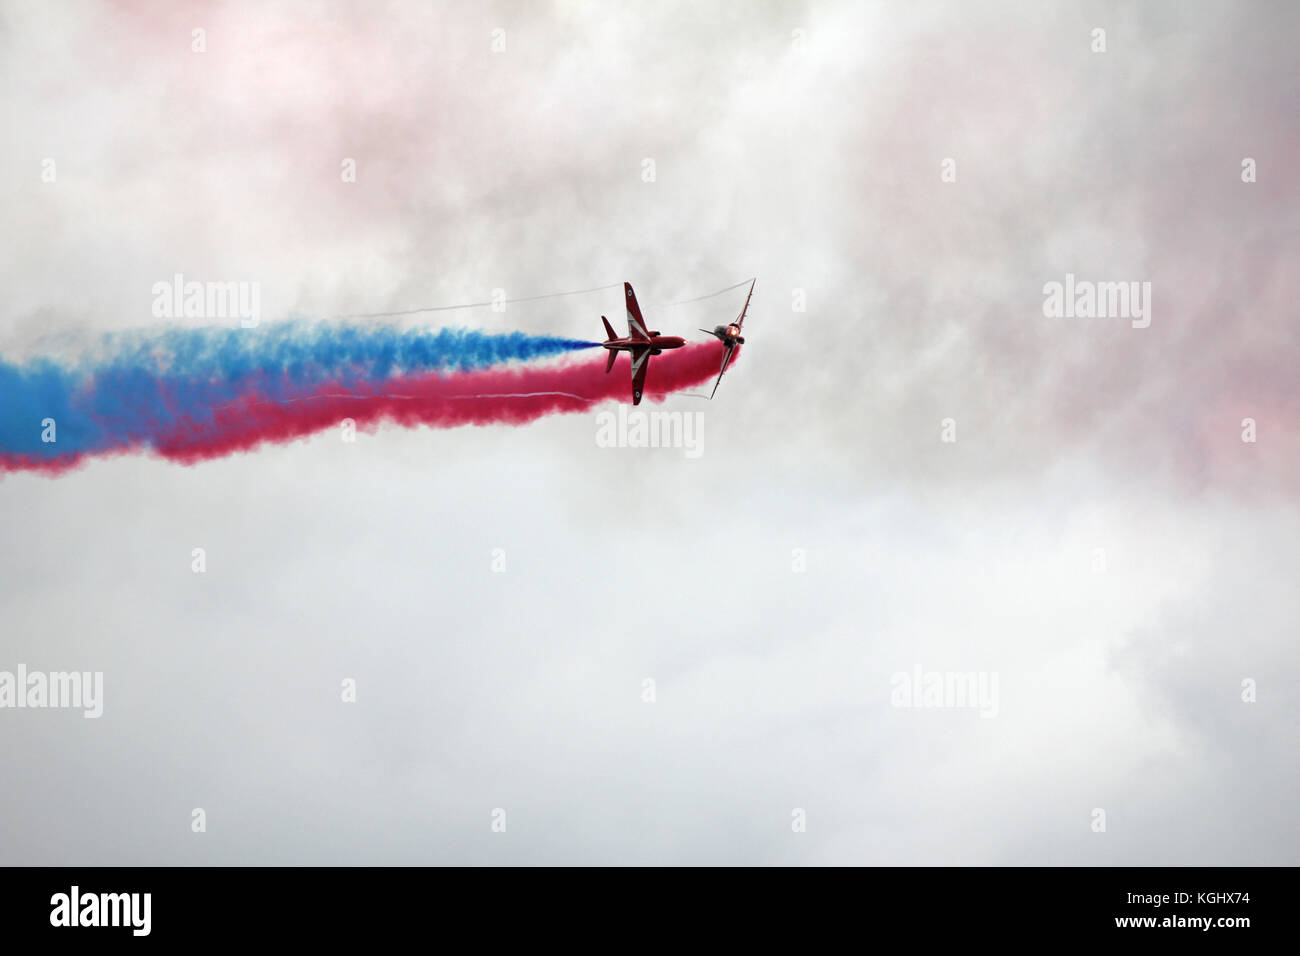 Red Arrows - Whoops! Apparent disaster is actually amazing skill. Hairsbreadth flying by consummate RAF professionals. - Stock Image